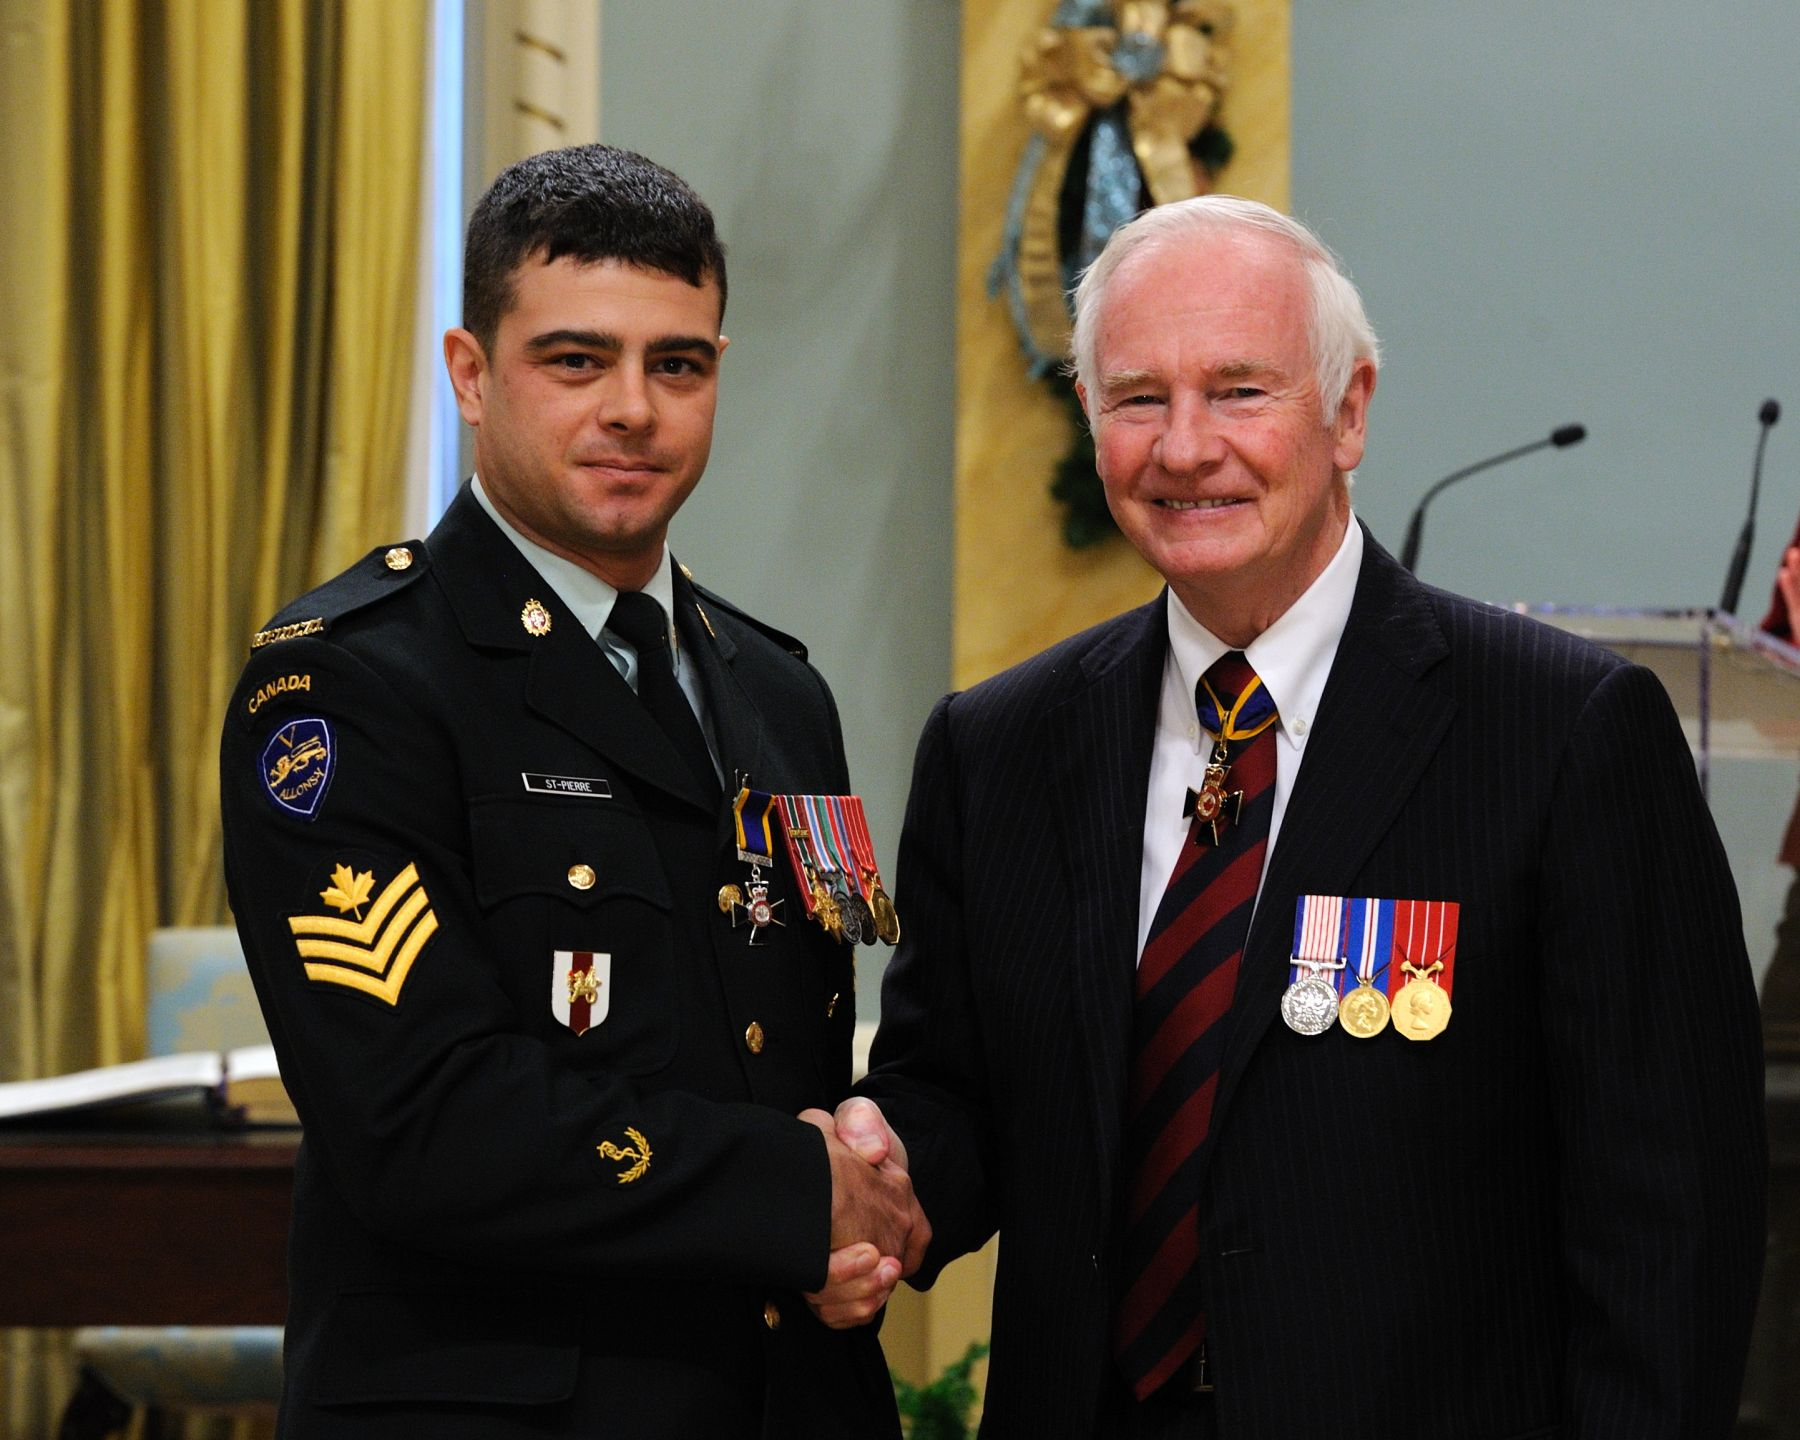 His Excellency presented the Order of Military Merit at the Member level (M.M.M.) to Sergeant Yan St-Pierre, M.M.M., C.D., 5 Field Ambulance, Courcelette, Quebec.